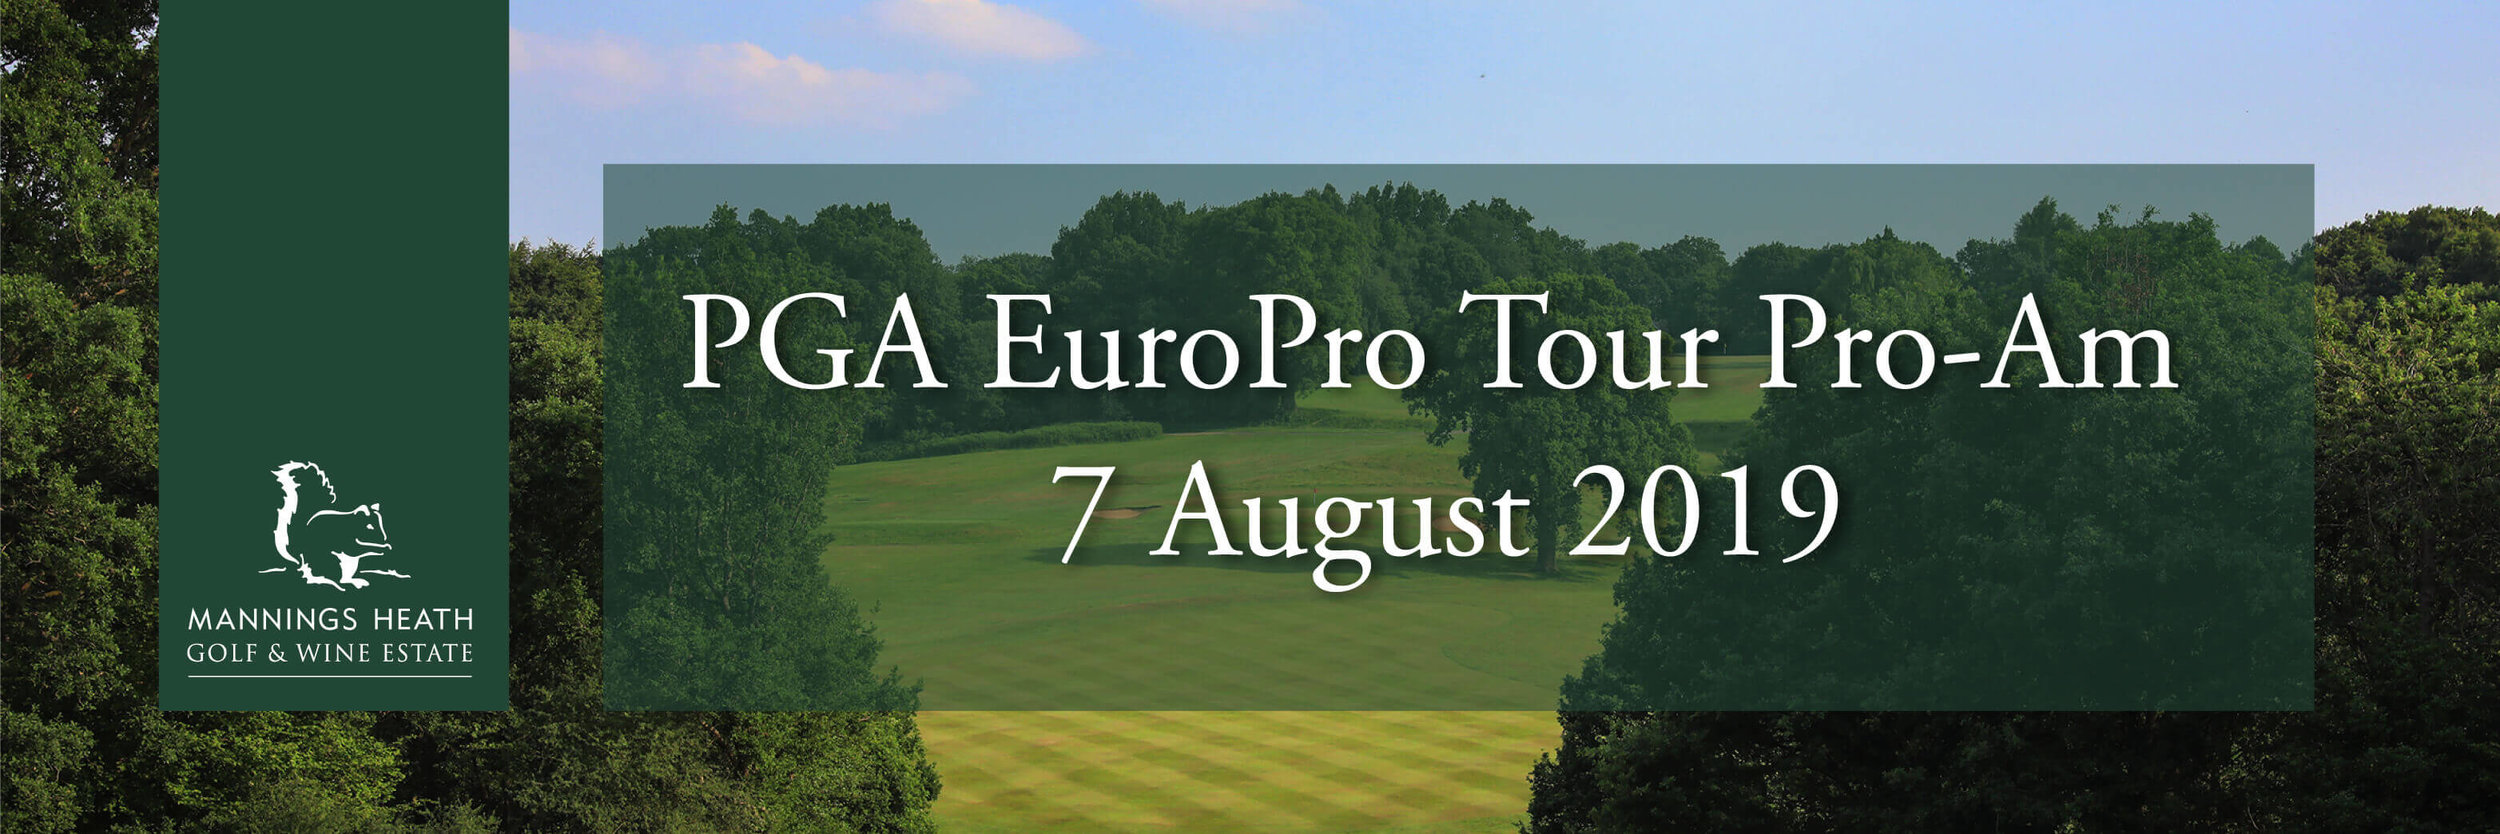 Mannings Heath EuroPro Tour 2019 Pro-Am Competition.jpg